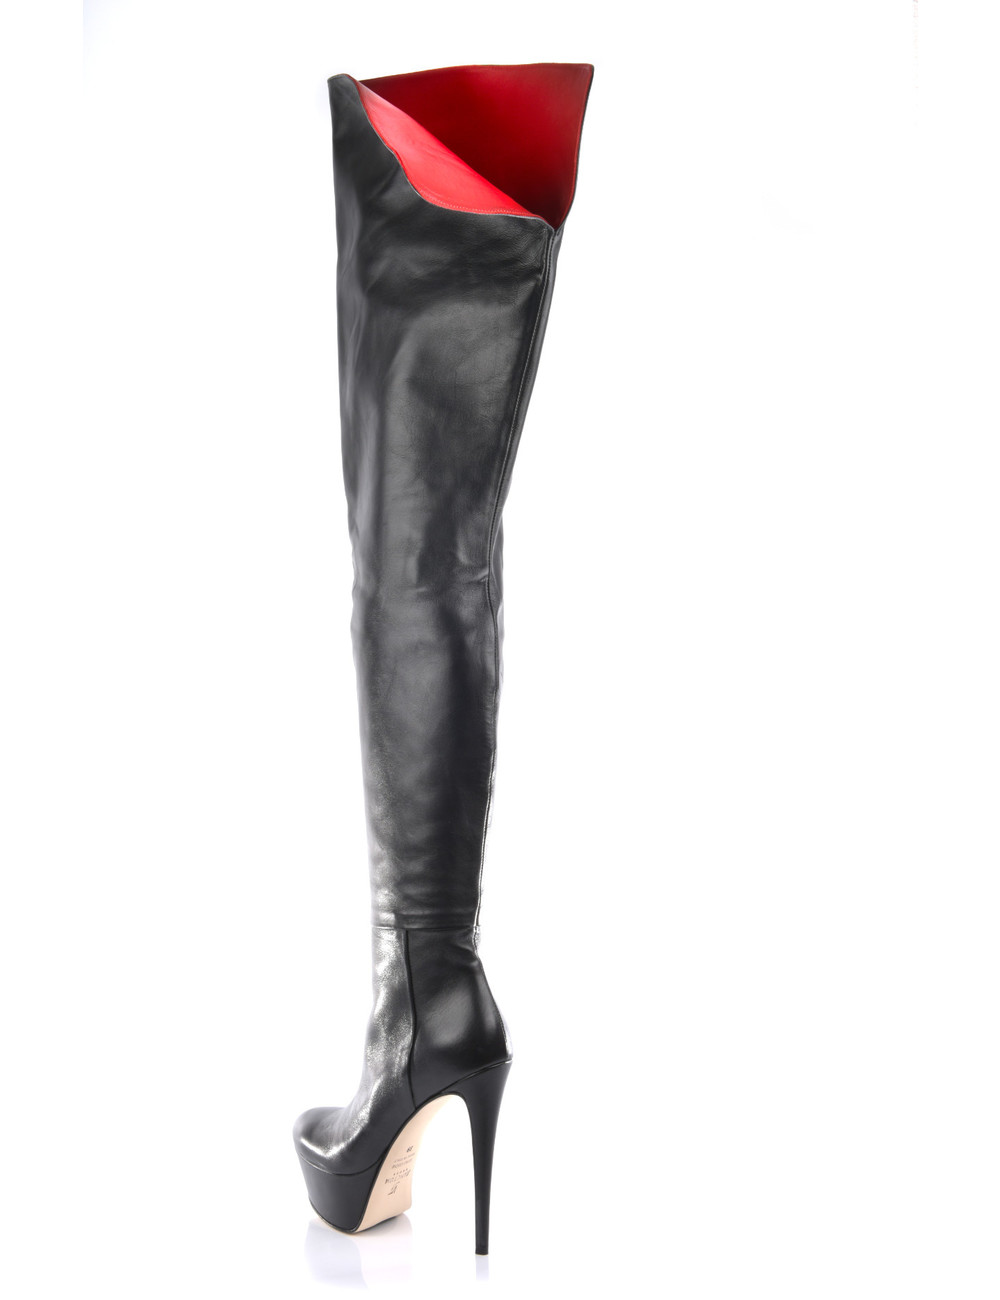 Sanctum  High Italian crotch boots ISIS with platform heels in real leather